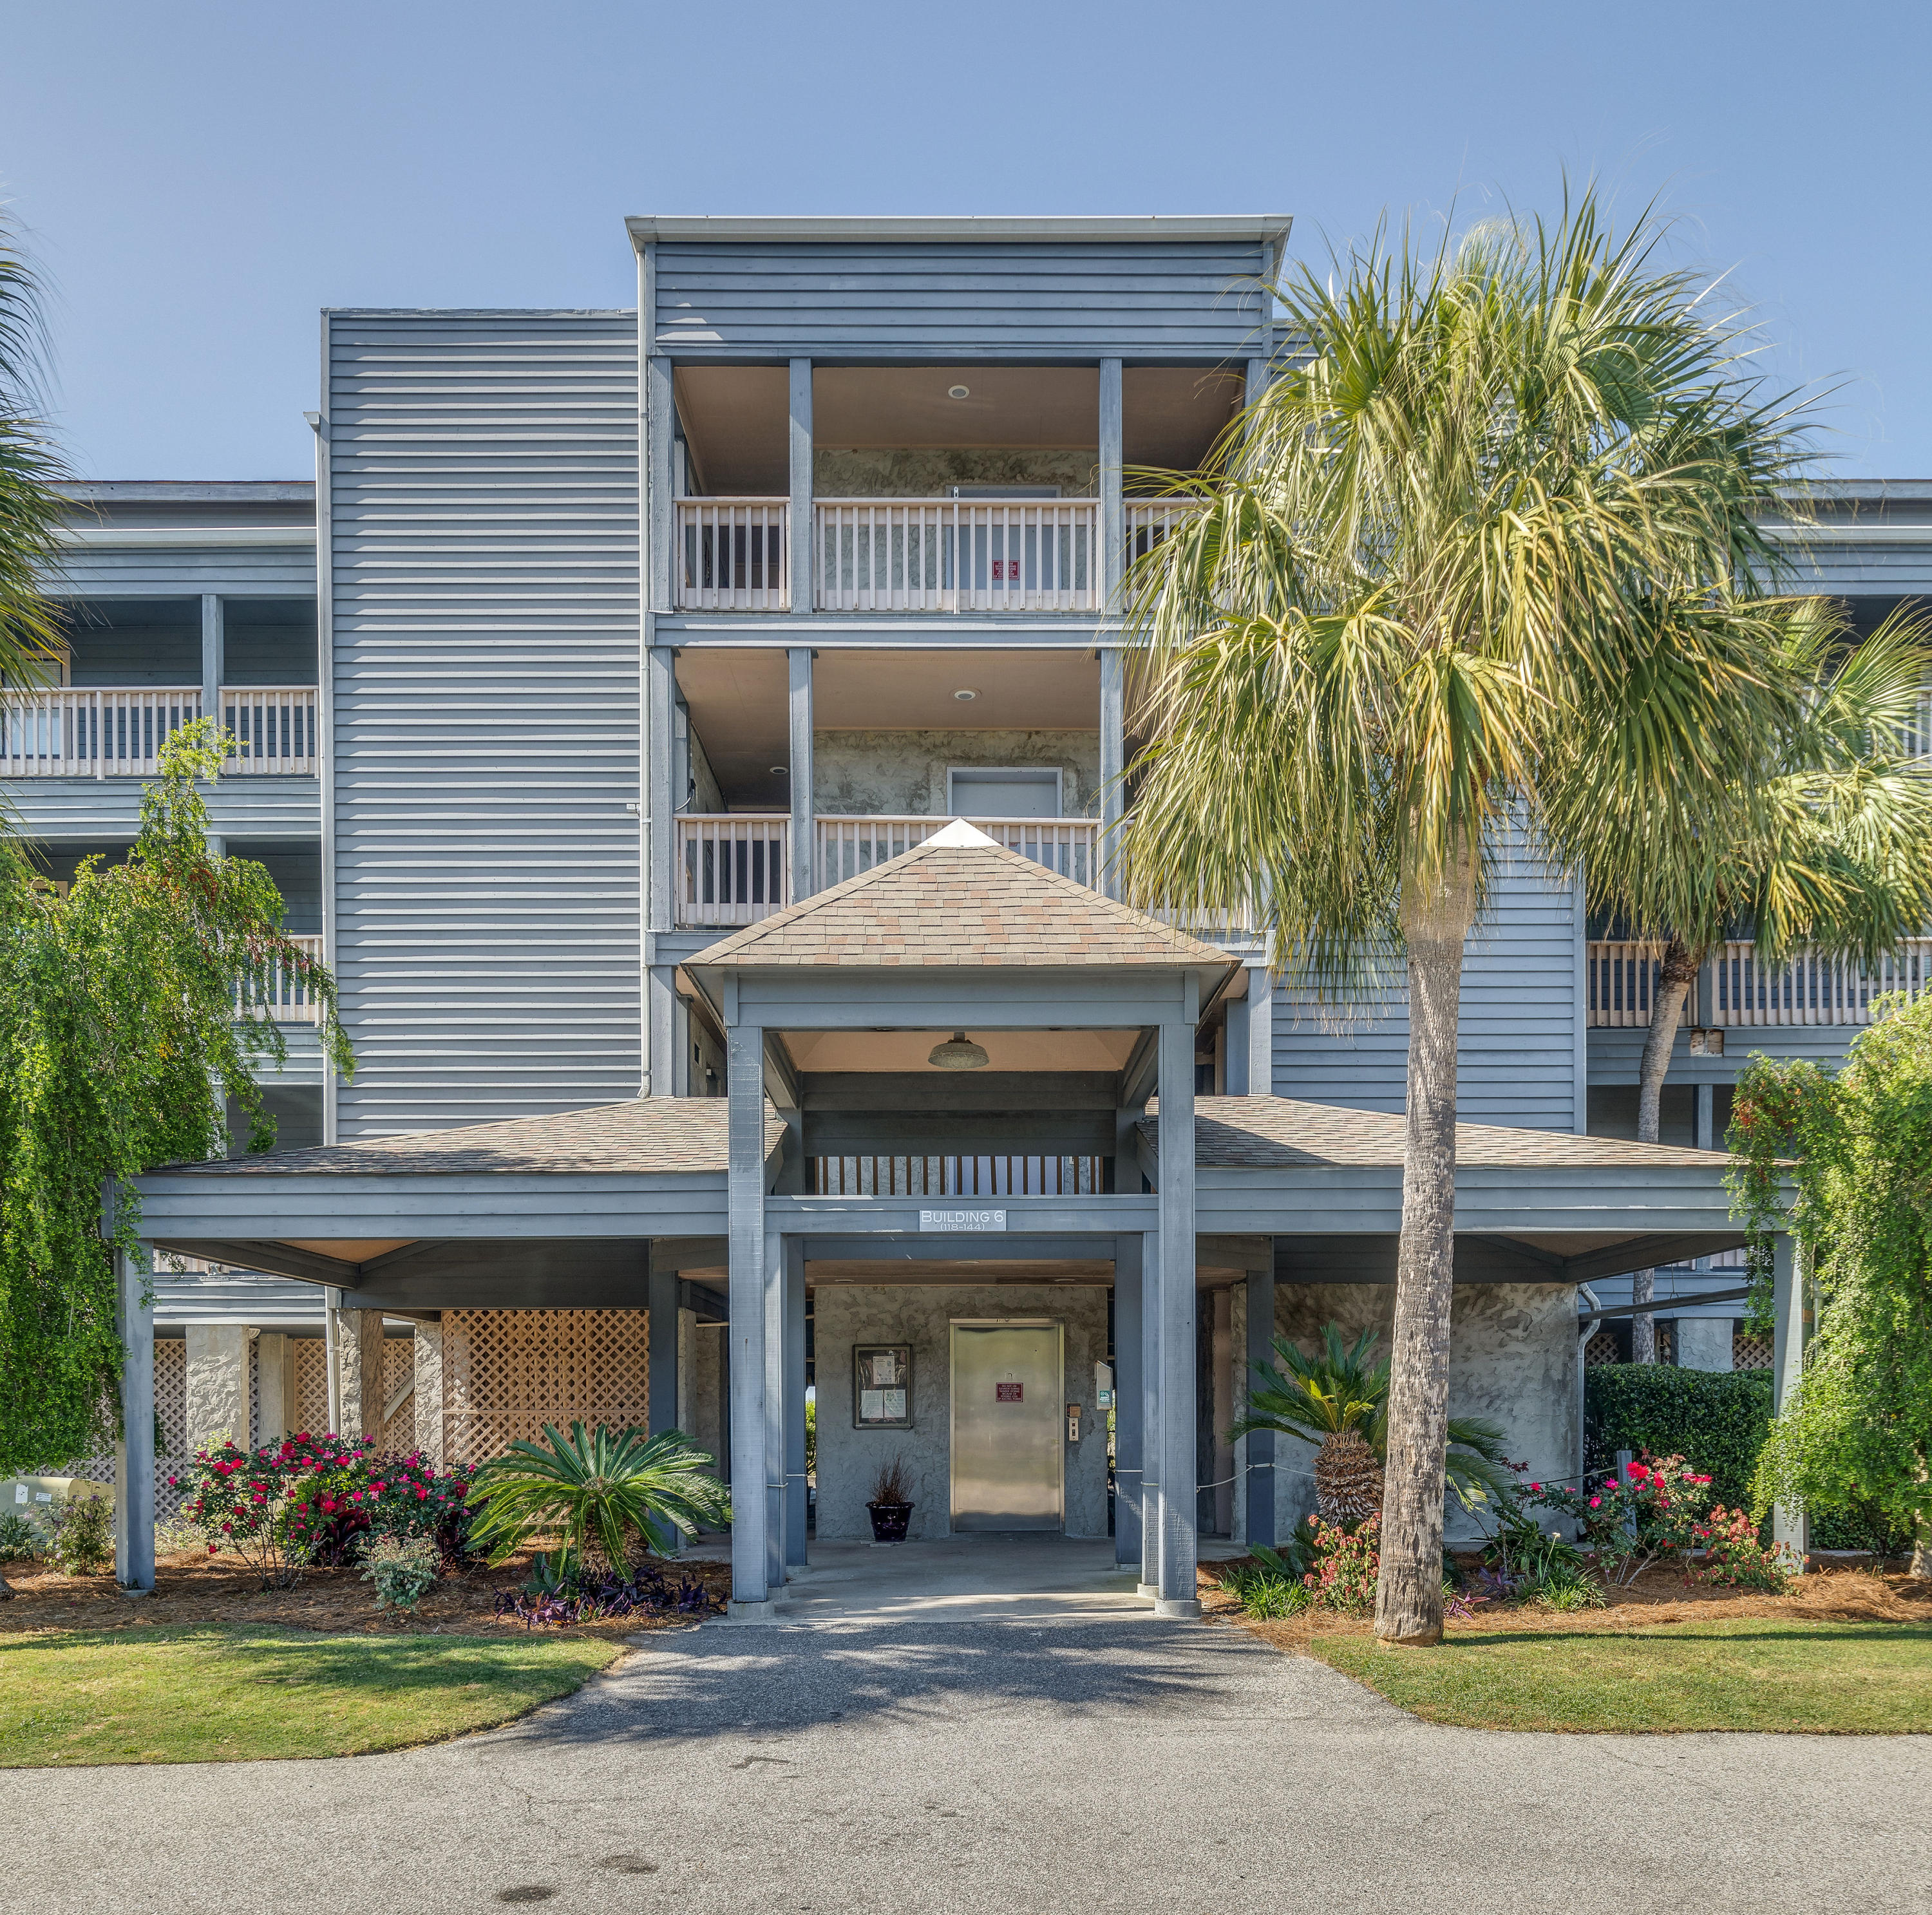 Mariners Cay Homes For Sale - 129 Marsh View Villas, Folly Beach, SC - 31